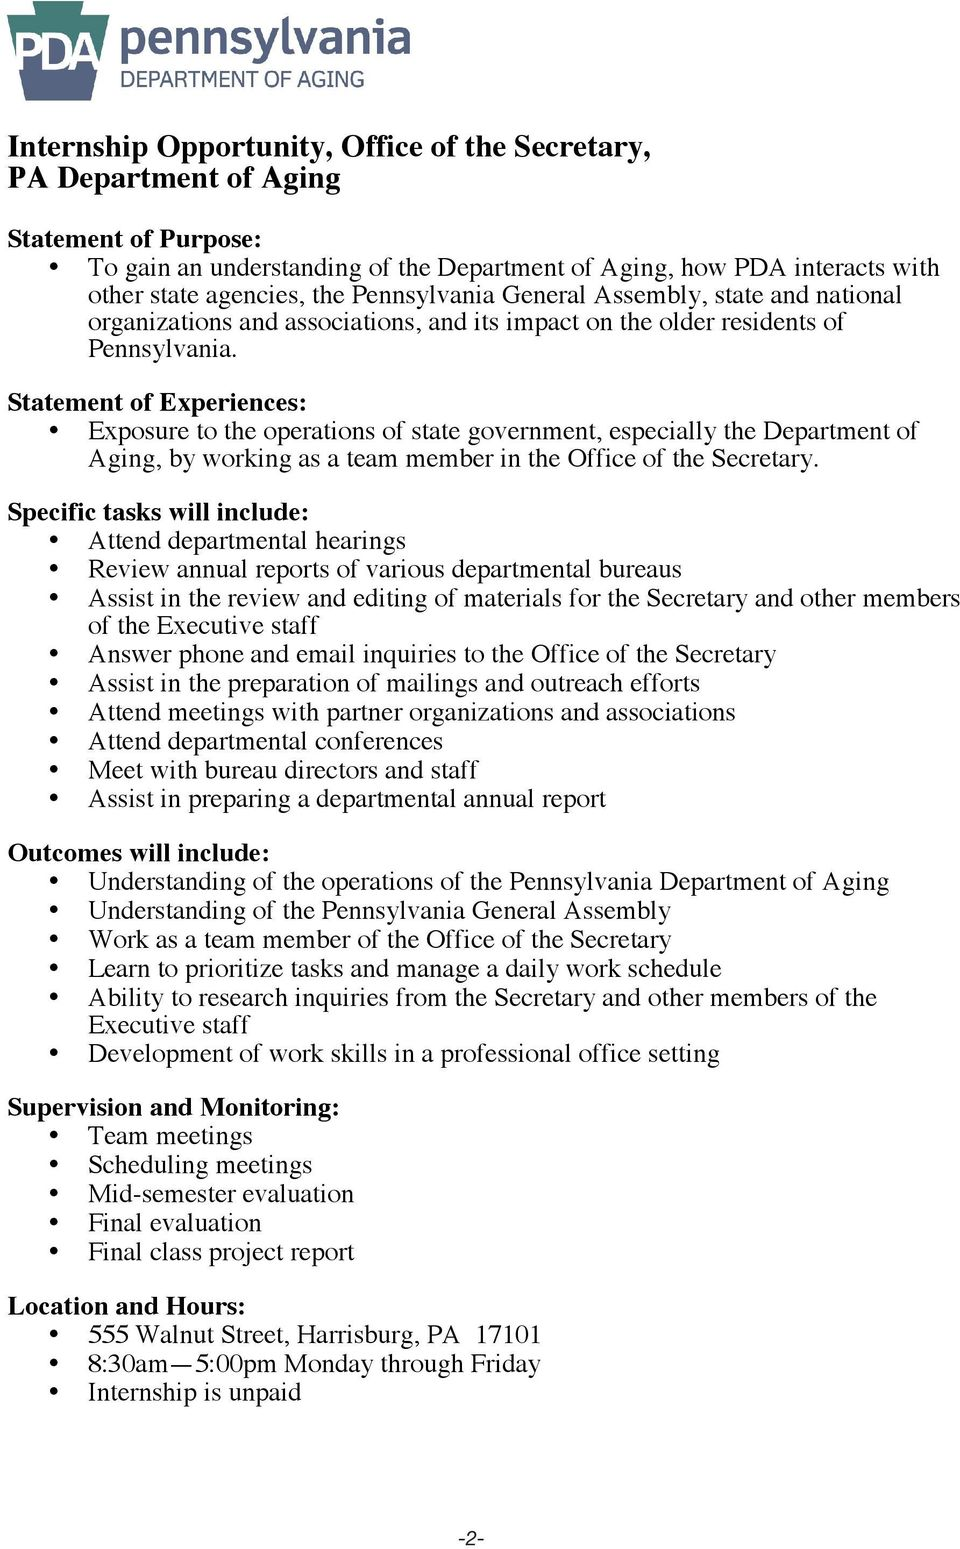 Statement of Experiences: Exposure to the operations of state government, especially the Department of Aging, by working as a team member in the Office of the Secretary.